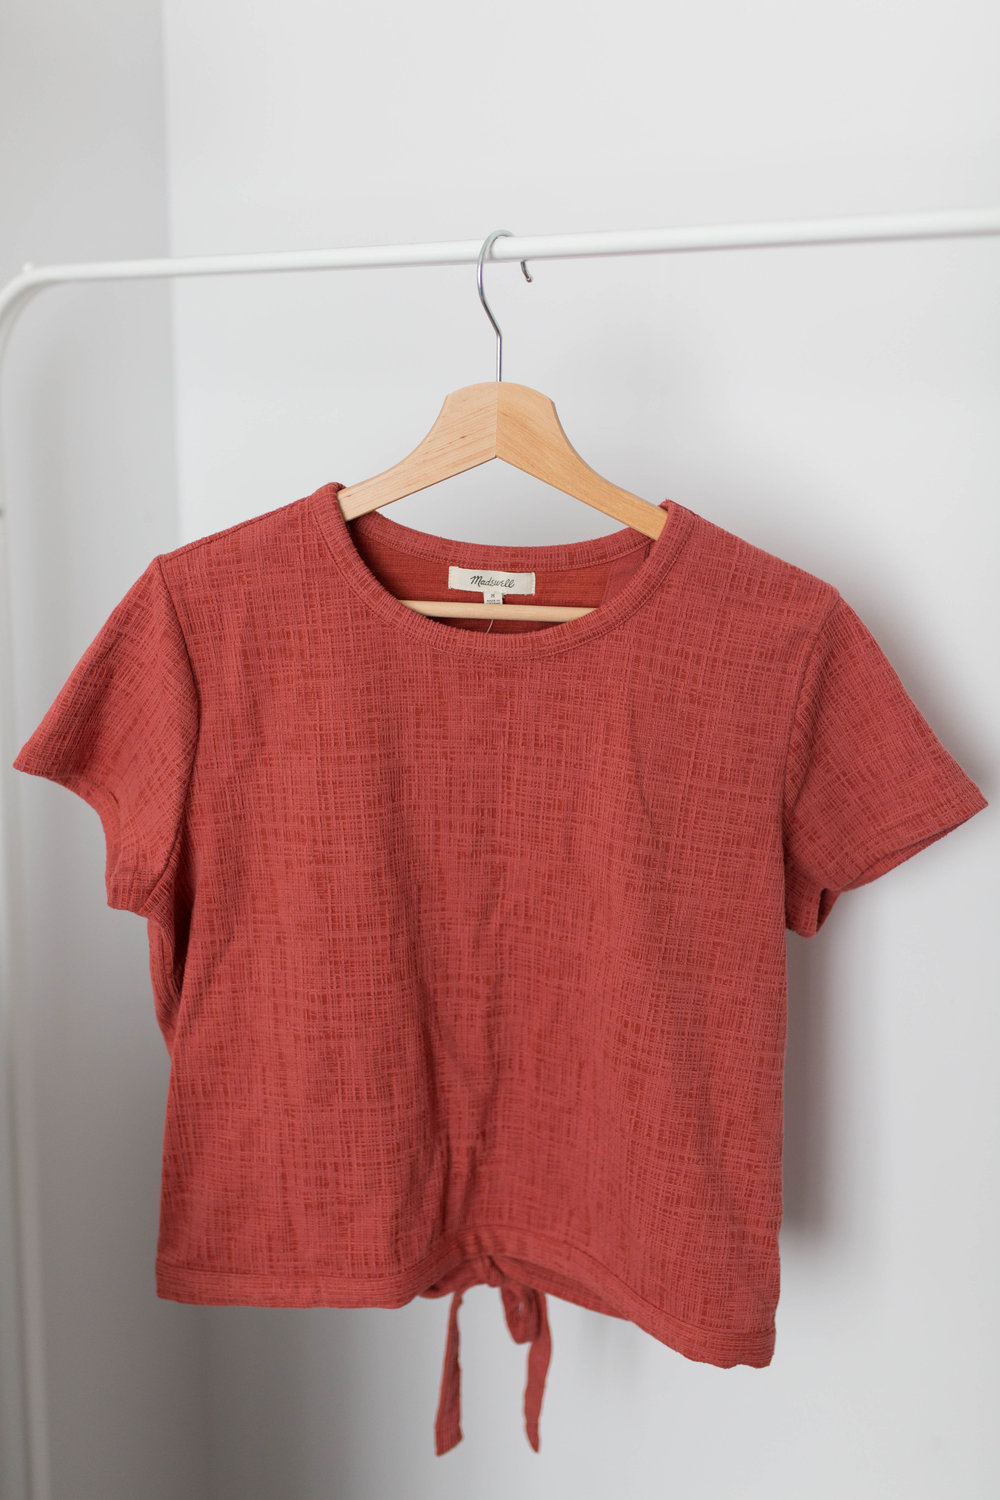 Madewell Cropped Knit Top